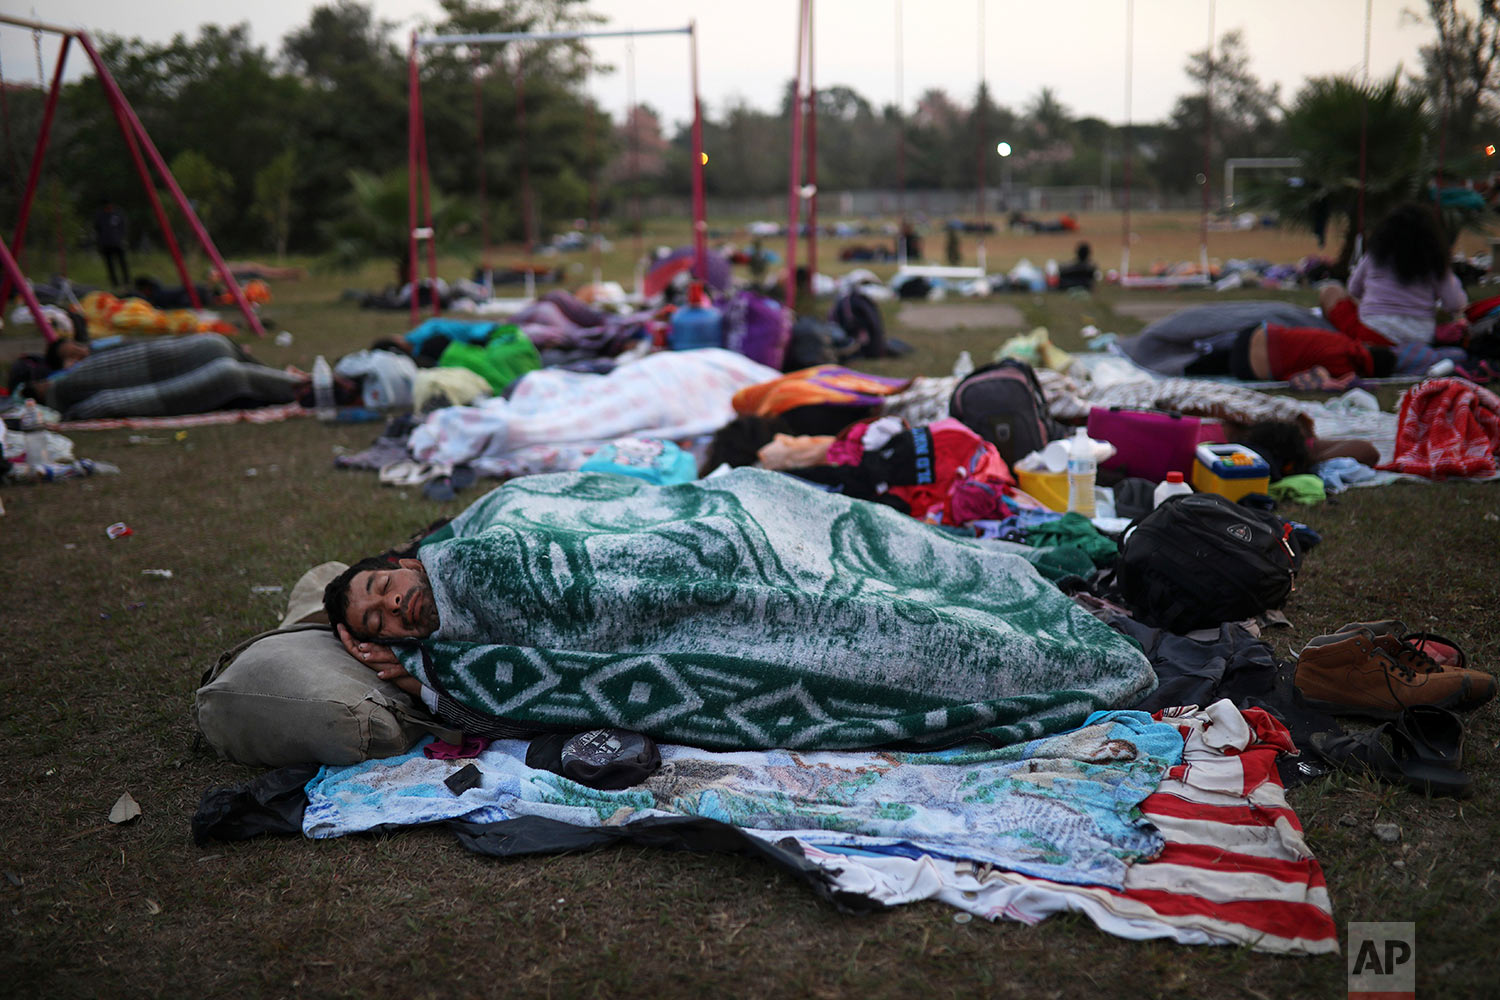 Central American migrants traveling with the Migrants Stations of the Cross caravan sleep at a sports club in Matias Romero, Oaxaca State, Mexico, early Tuesday, April 3, 2018. (AP Photo/Felix Marquez)